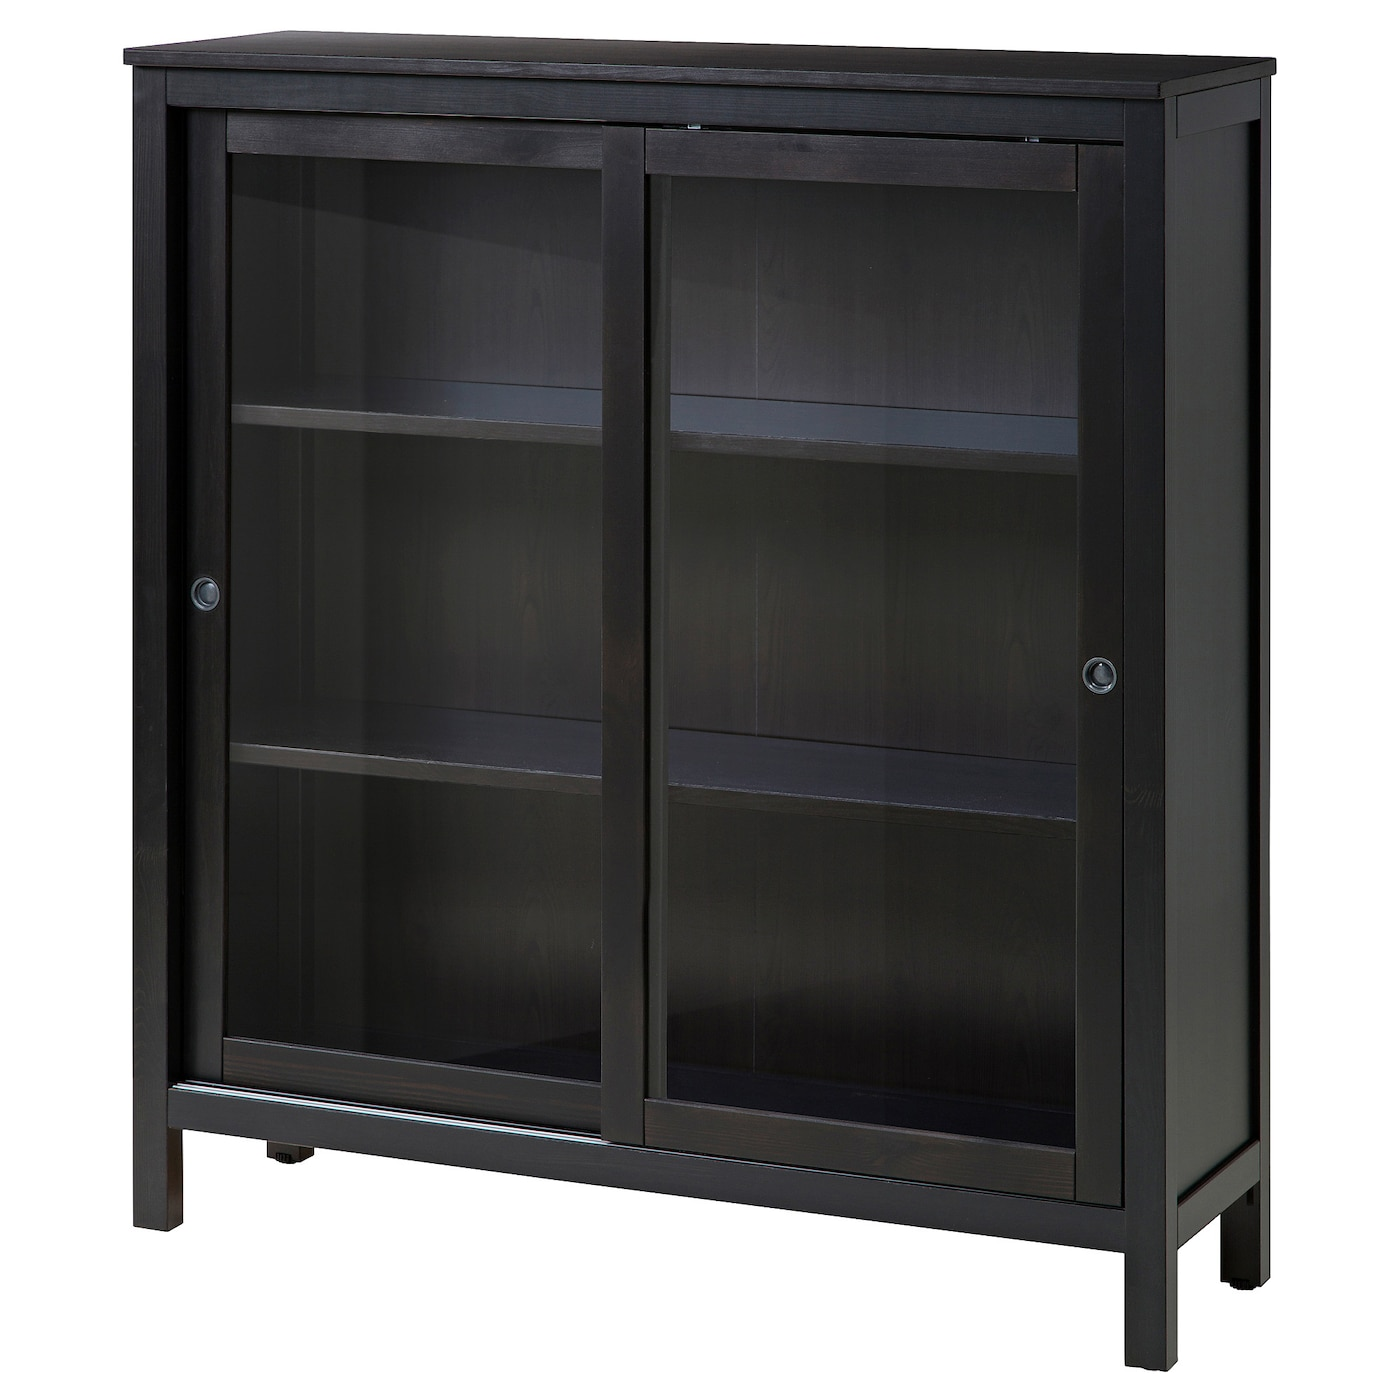 storage cabinets with glass doors storage cabinets amp storage cupboards ikea ireland 26855